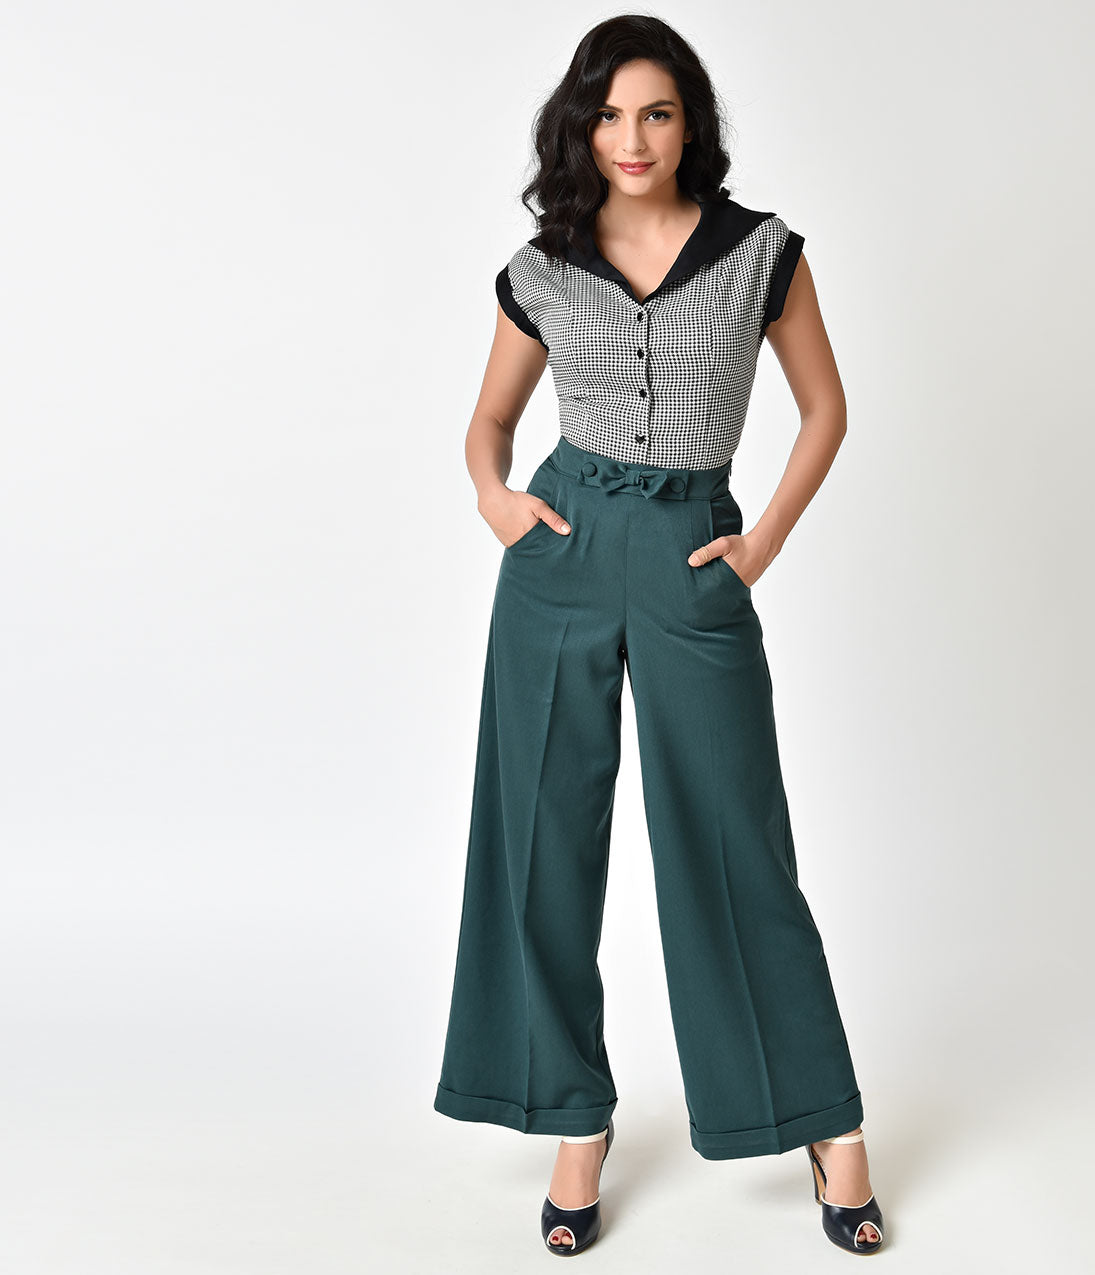 Vintage High Waisted Trousers, Sailor Pants, Jeans Banned 1940s Style Teal Green High Waist Anika Pants $58.00 AT vintagedancer.com